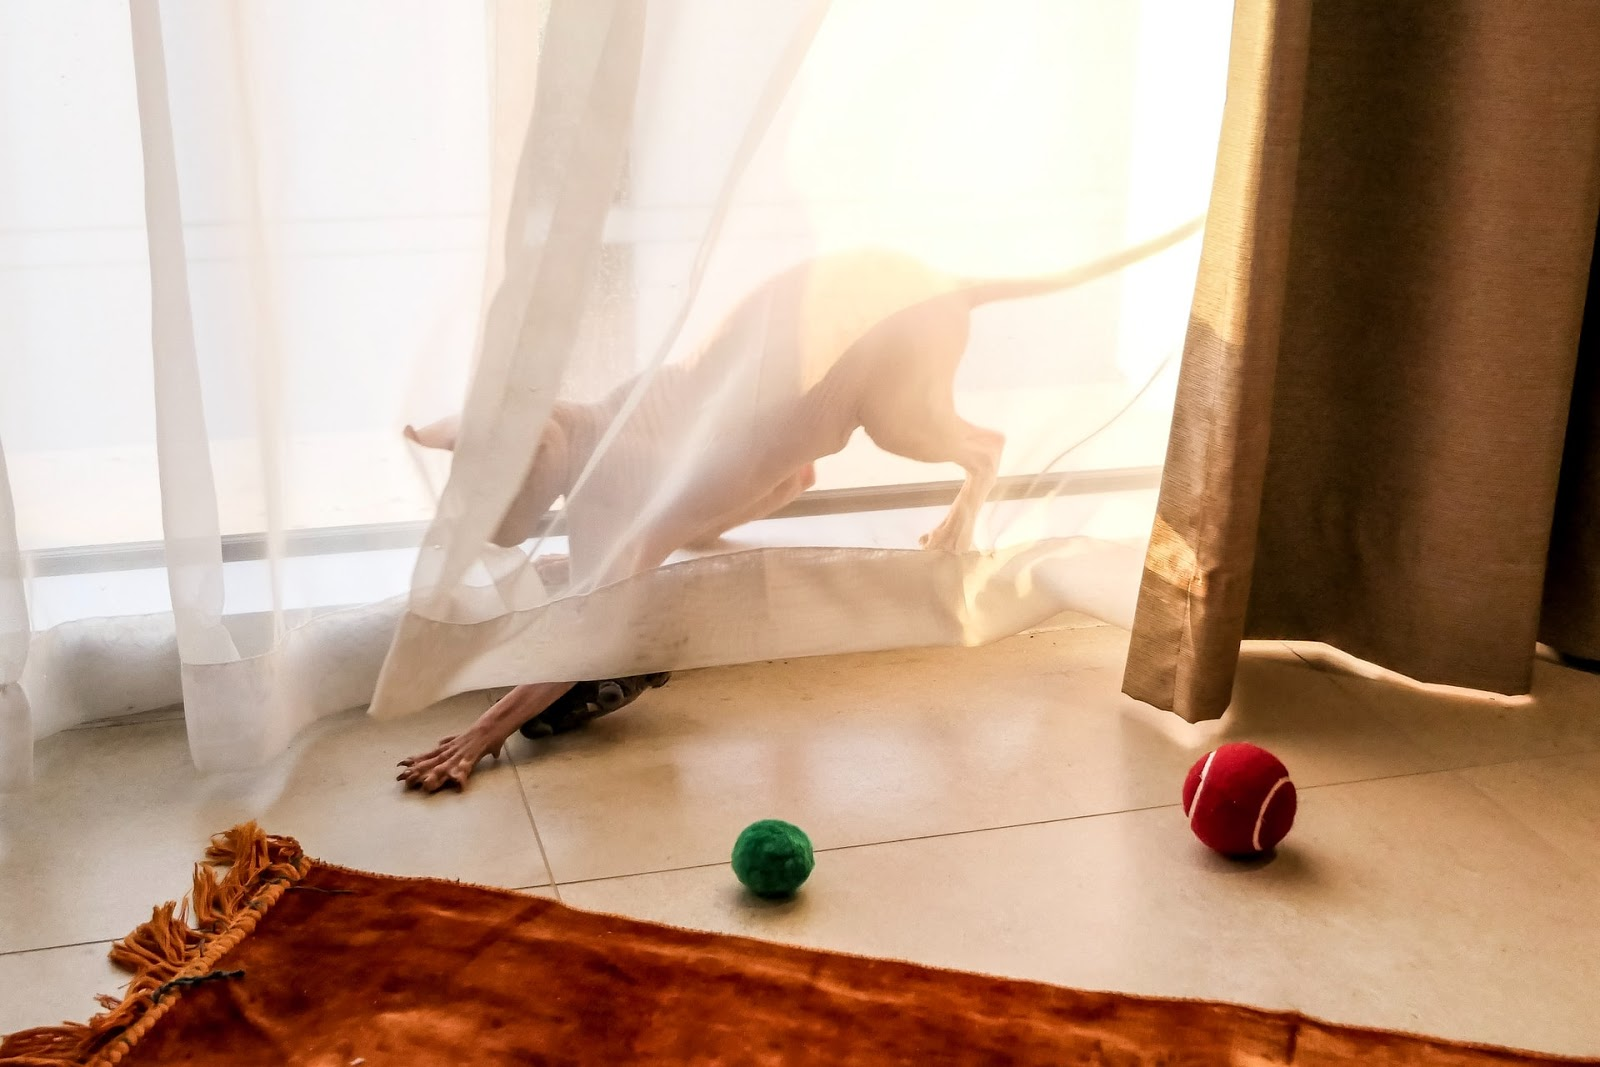 A hairless cat plays with a toy behind a sheer curtain.